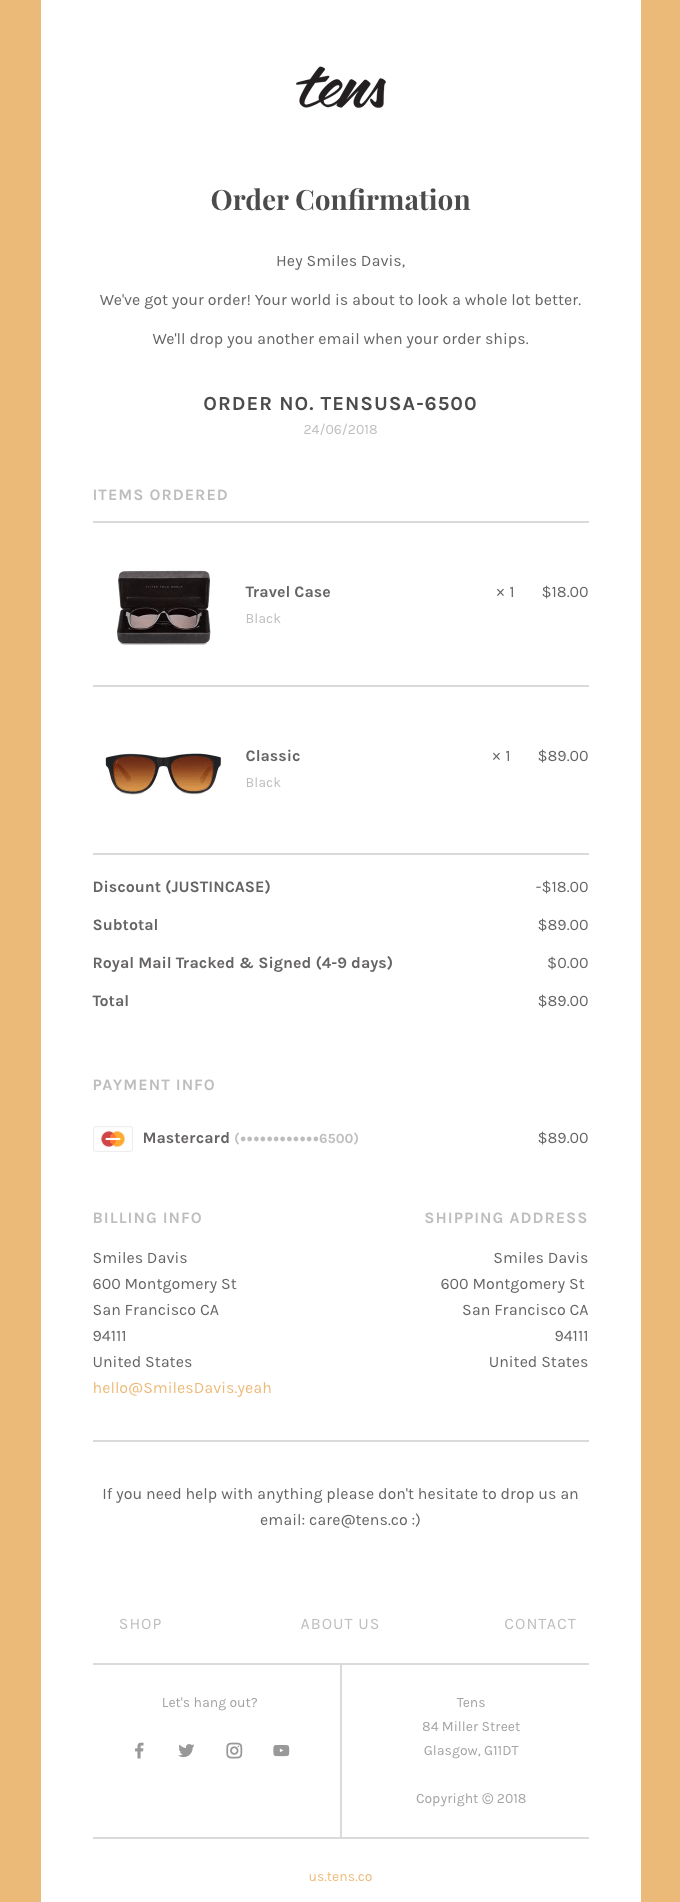 Tens - Post-purchase email